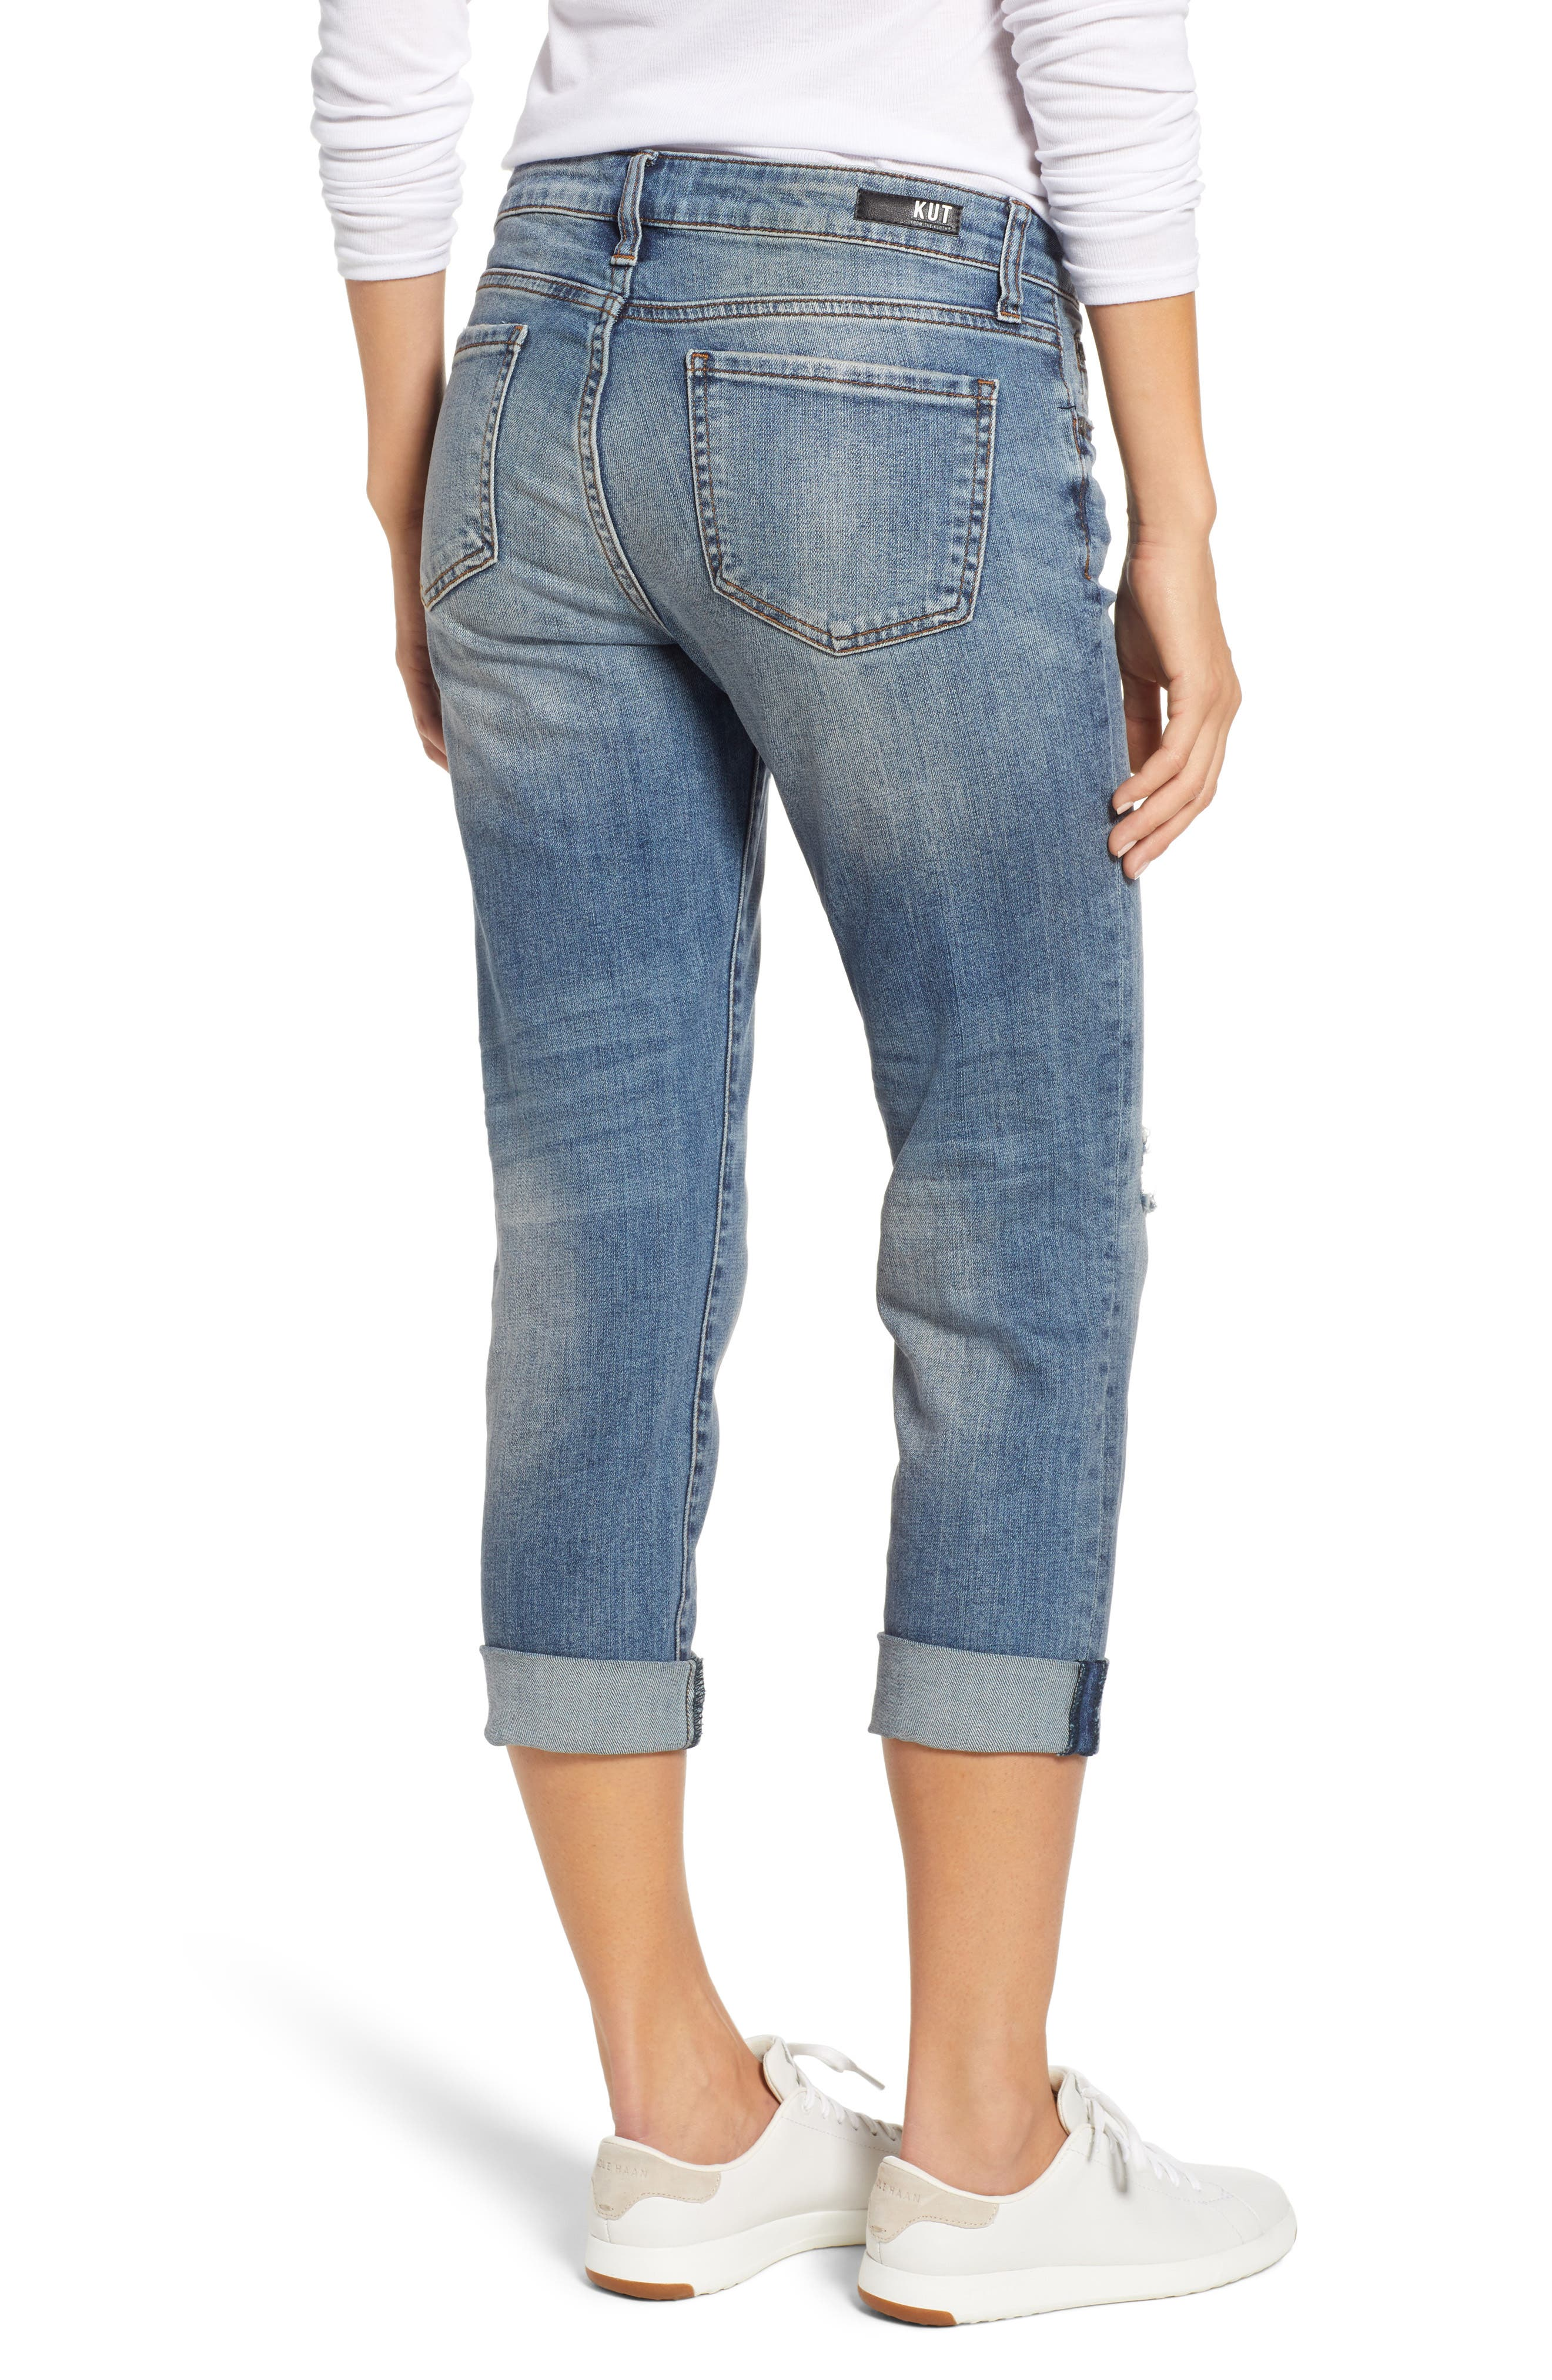 Catherine Ripped Straight Leg Ankle Jeans,                             Alternate thumbnail 2, color,                             400